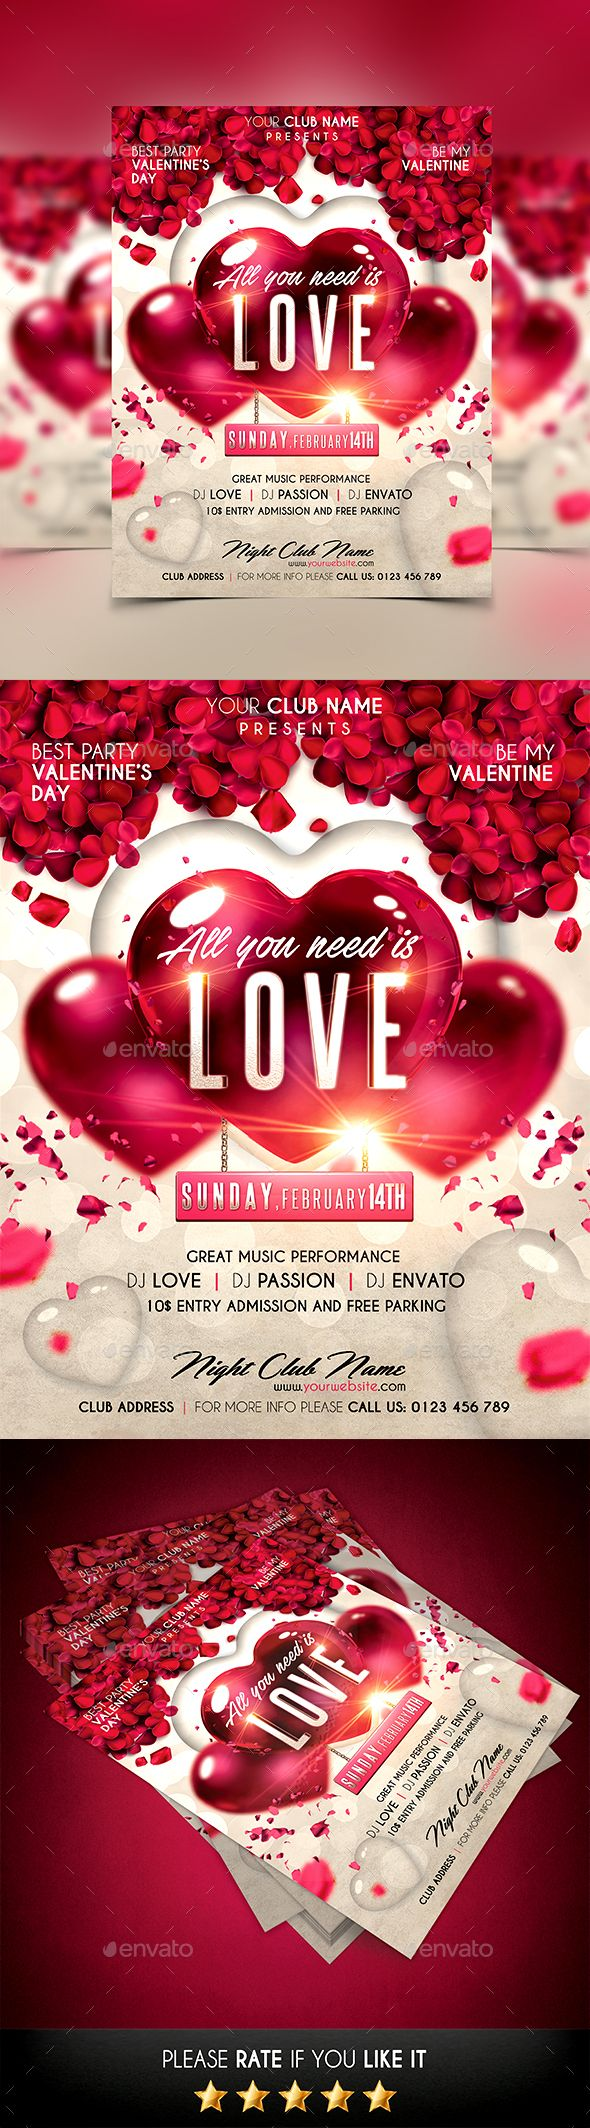 Valentines Day Flyer Template PSD #design Download: http://graphicriver.net/item/valentines-day-flyer/14428405?ref=ksioks